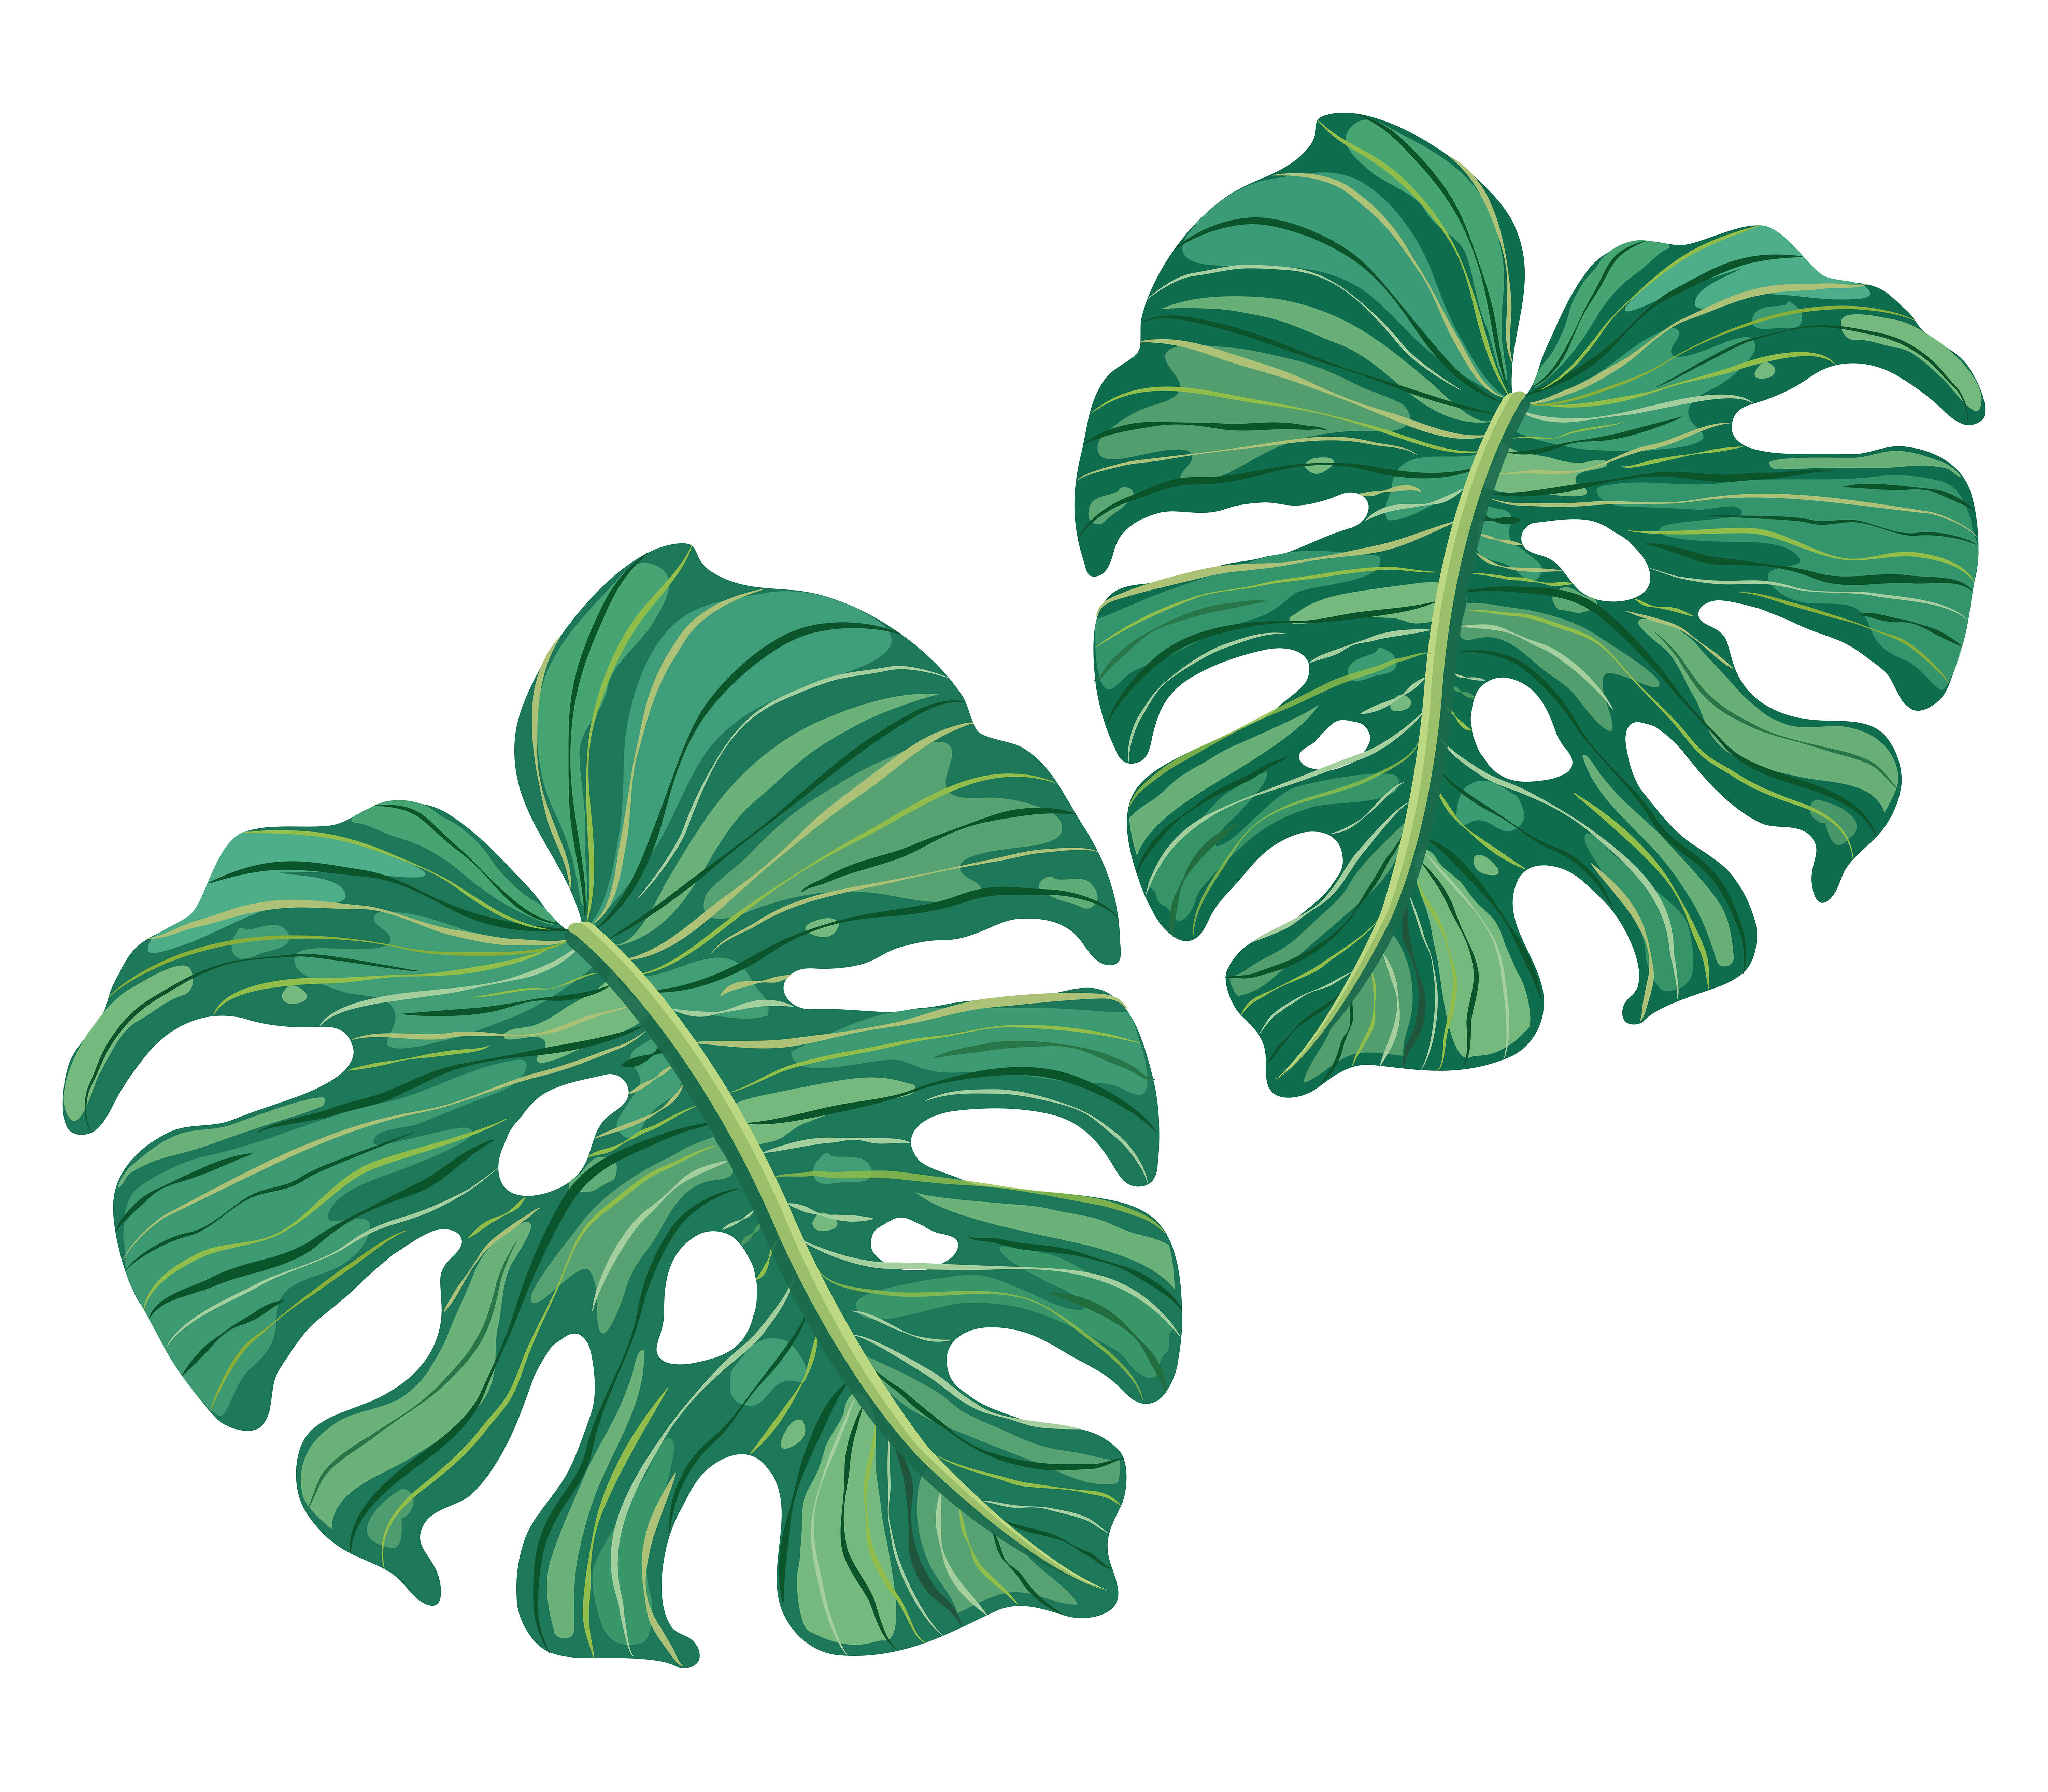 Summer Tropical Green Leaves Vector Download Free Vectors Clipart Graphics Vector Art Find the perfect tropical green leaf stock illustrations from getty images. vecteezy